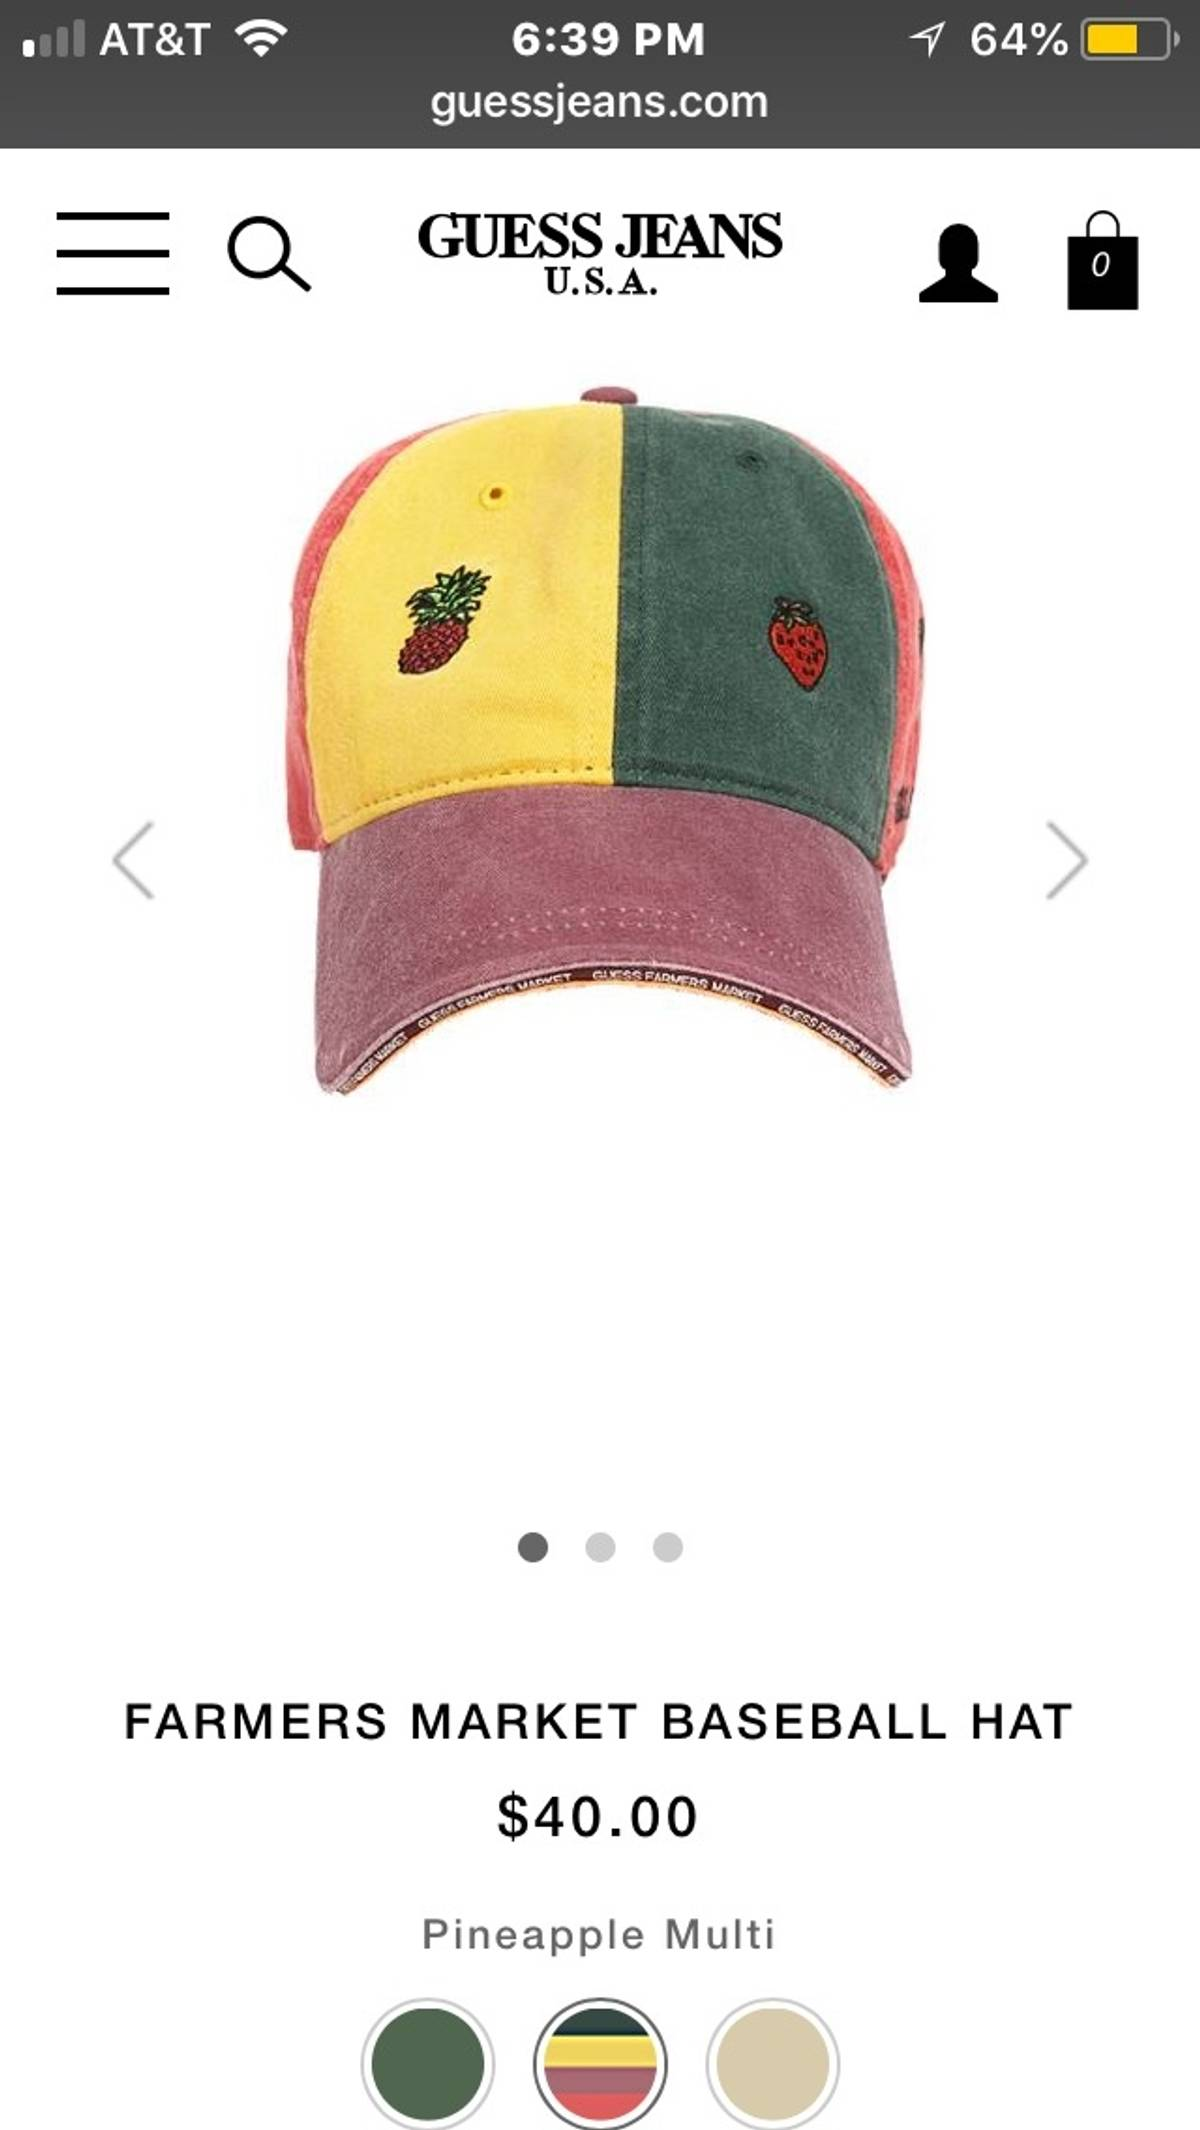 1b08322ca27 Guess Guess Jeans Sean Wotherspoon Guess Farmers Market Baseball Hat  Pineapple Multicolor Size one size - Hats for Sale - Grailed